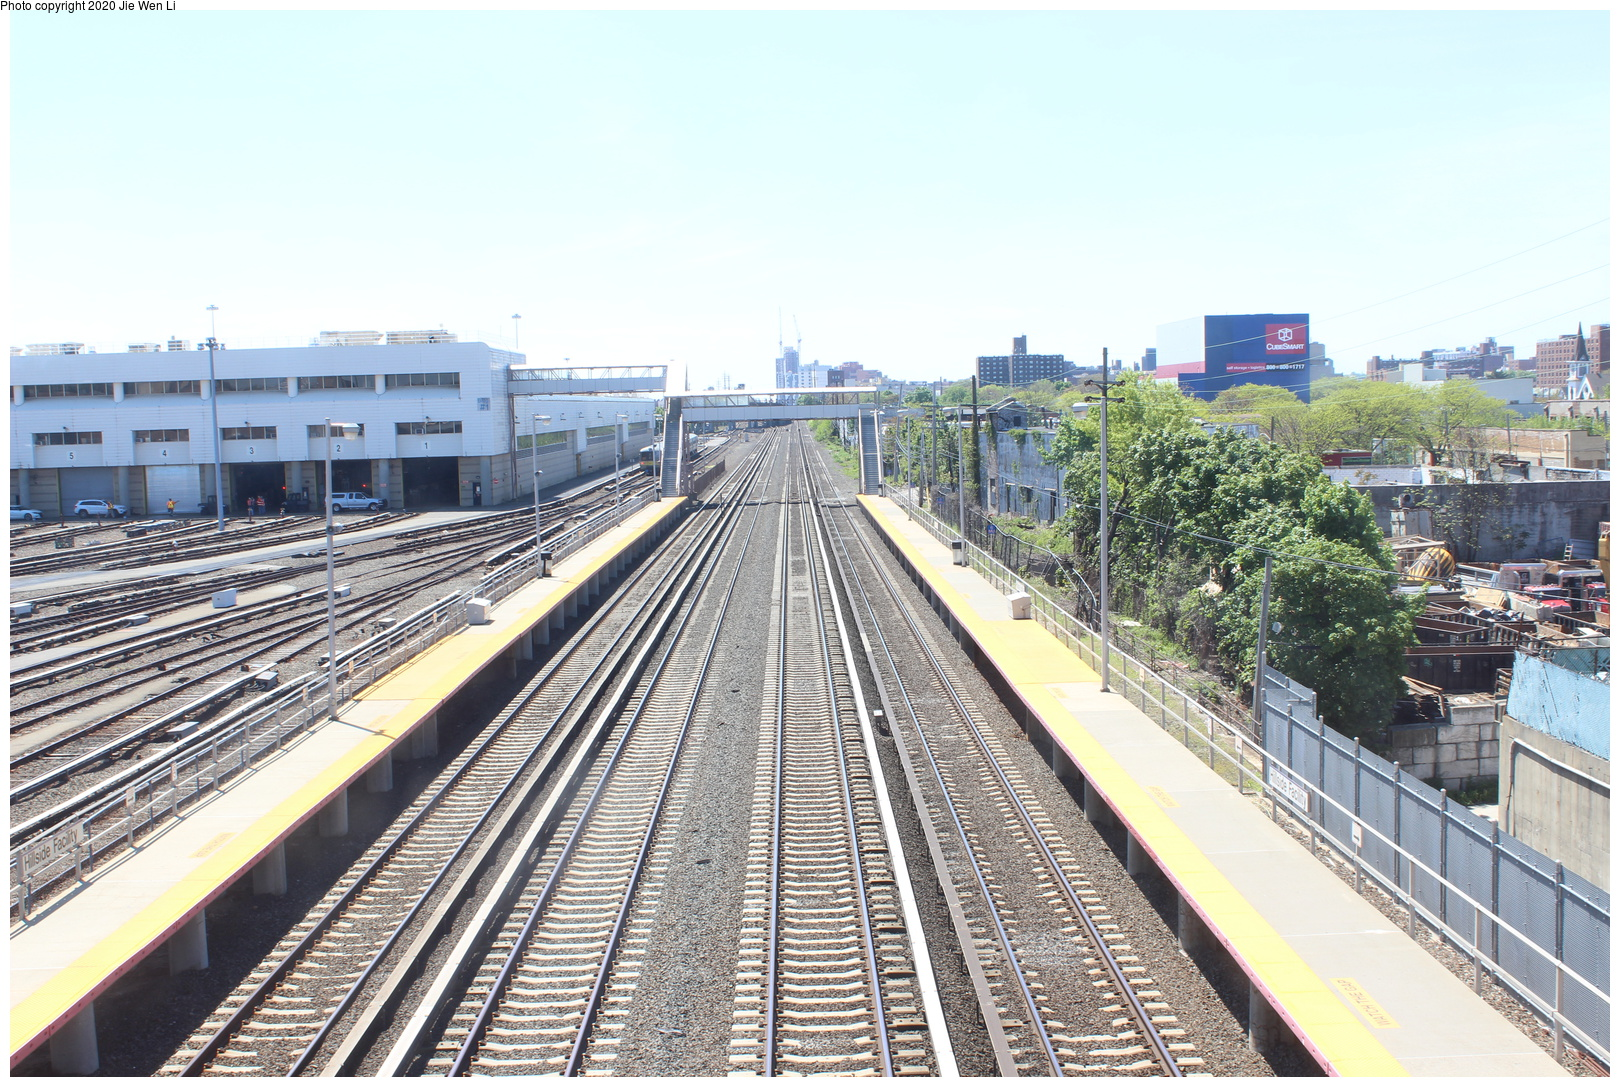 (213k, 1026x1044)<br><b>Country:</b> United States<br><b>City:</b> New York<br><b>System:</b> New York City Transit<br><b>Location:</b> East 180th Street Yard<br><b>Car:</b> Low-V 4932/5324 <br><b>Photo by:</b> Joel Shanus<br><b>Viewed (this week/total):</b> 1 / 959